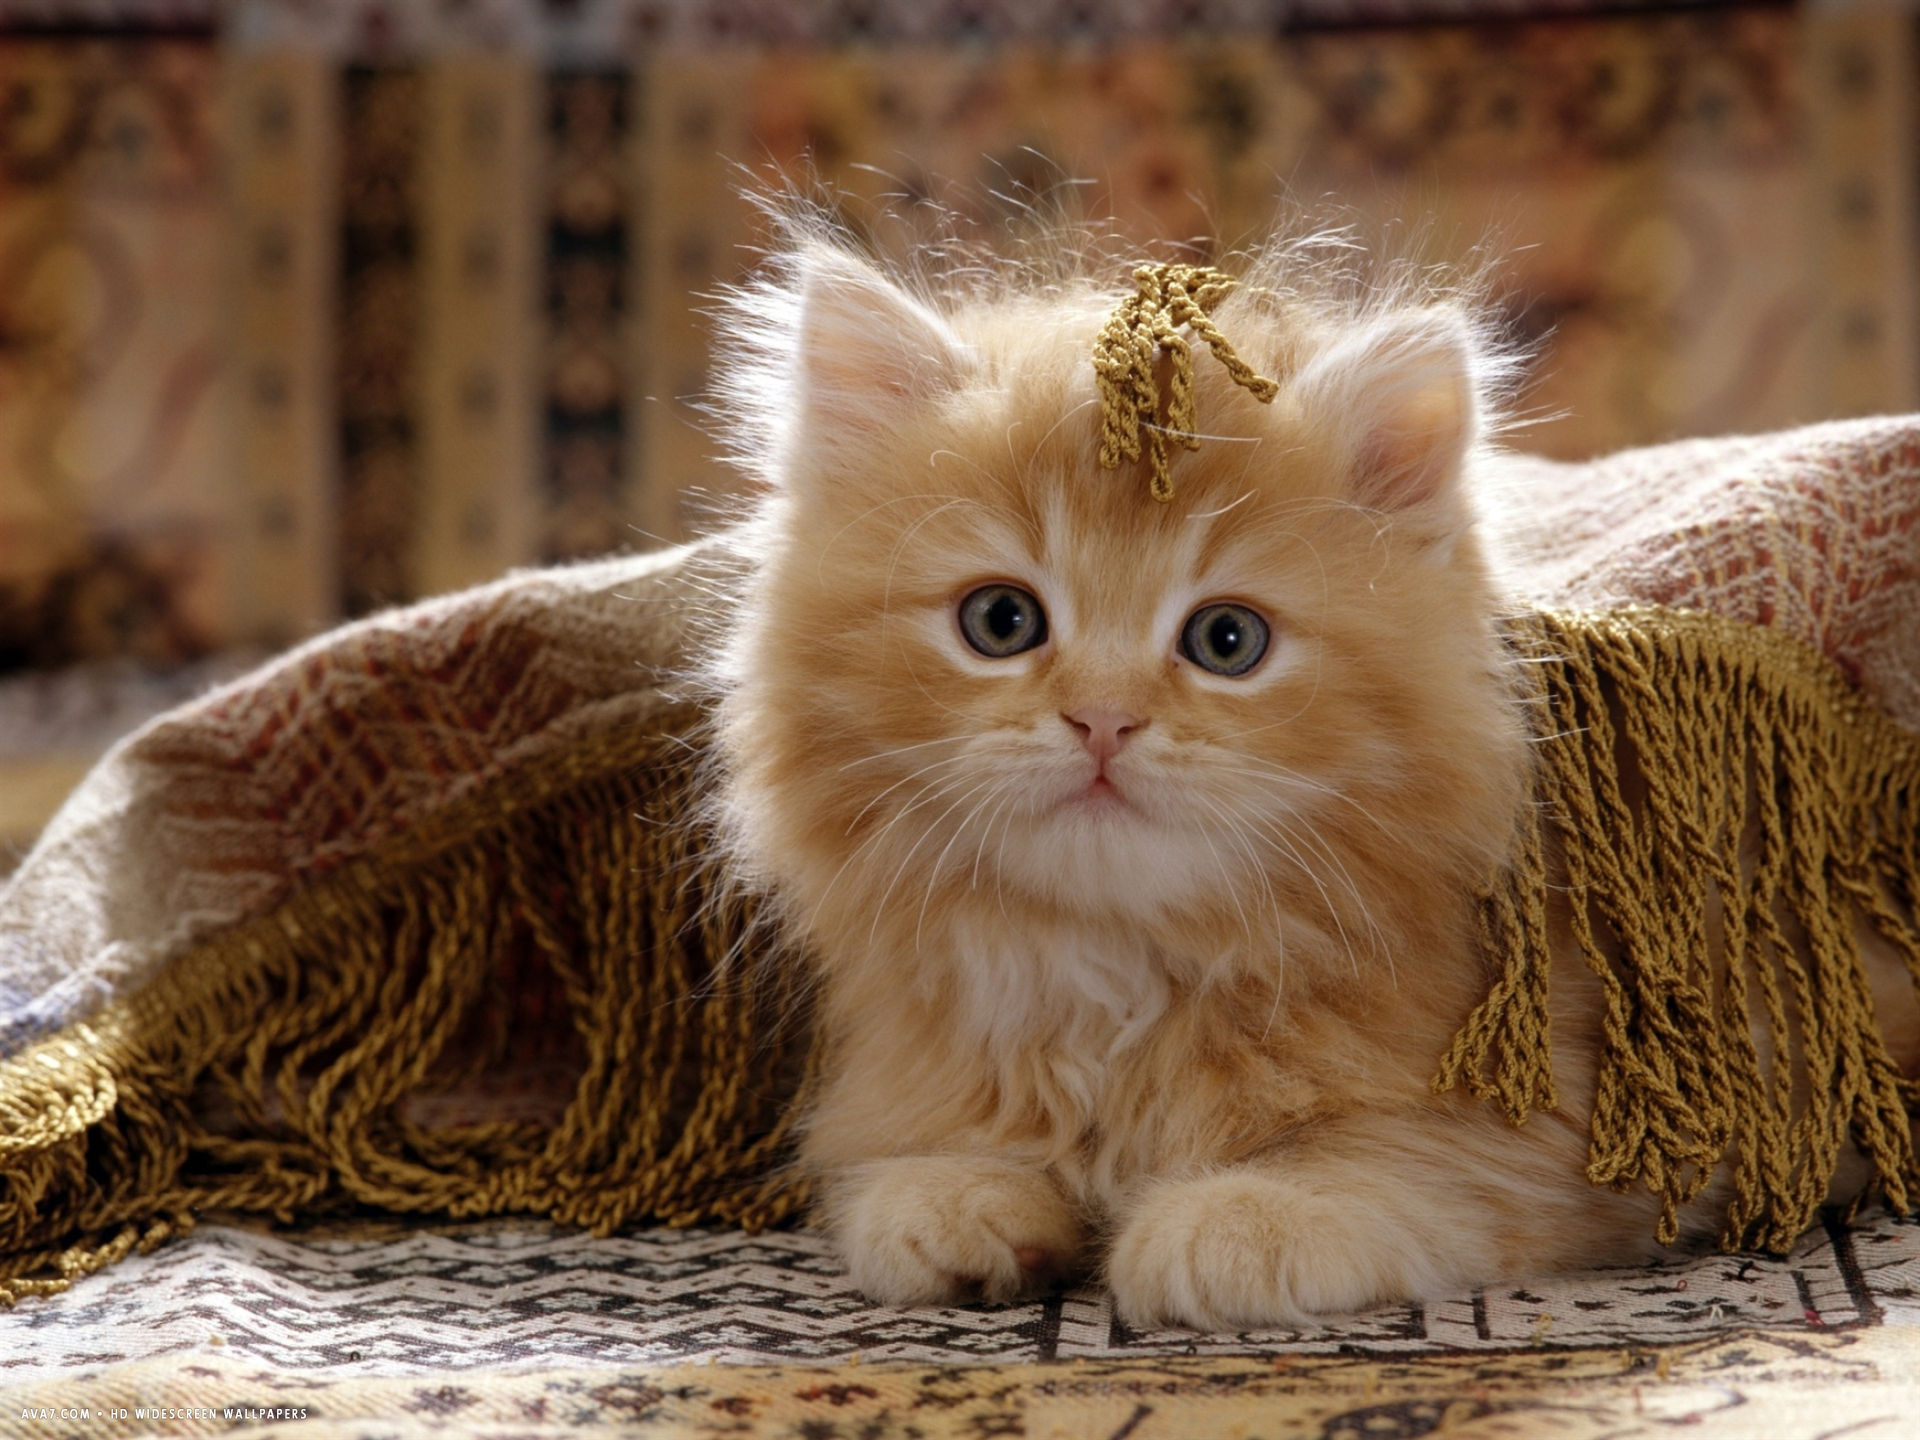 red persian cross male kitten playing under fringed cover